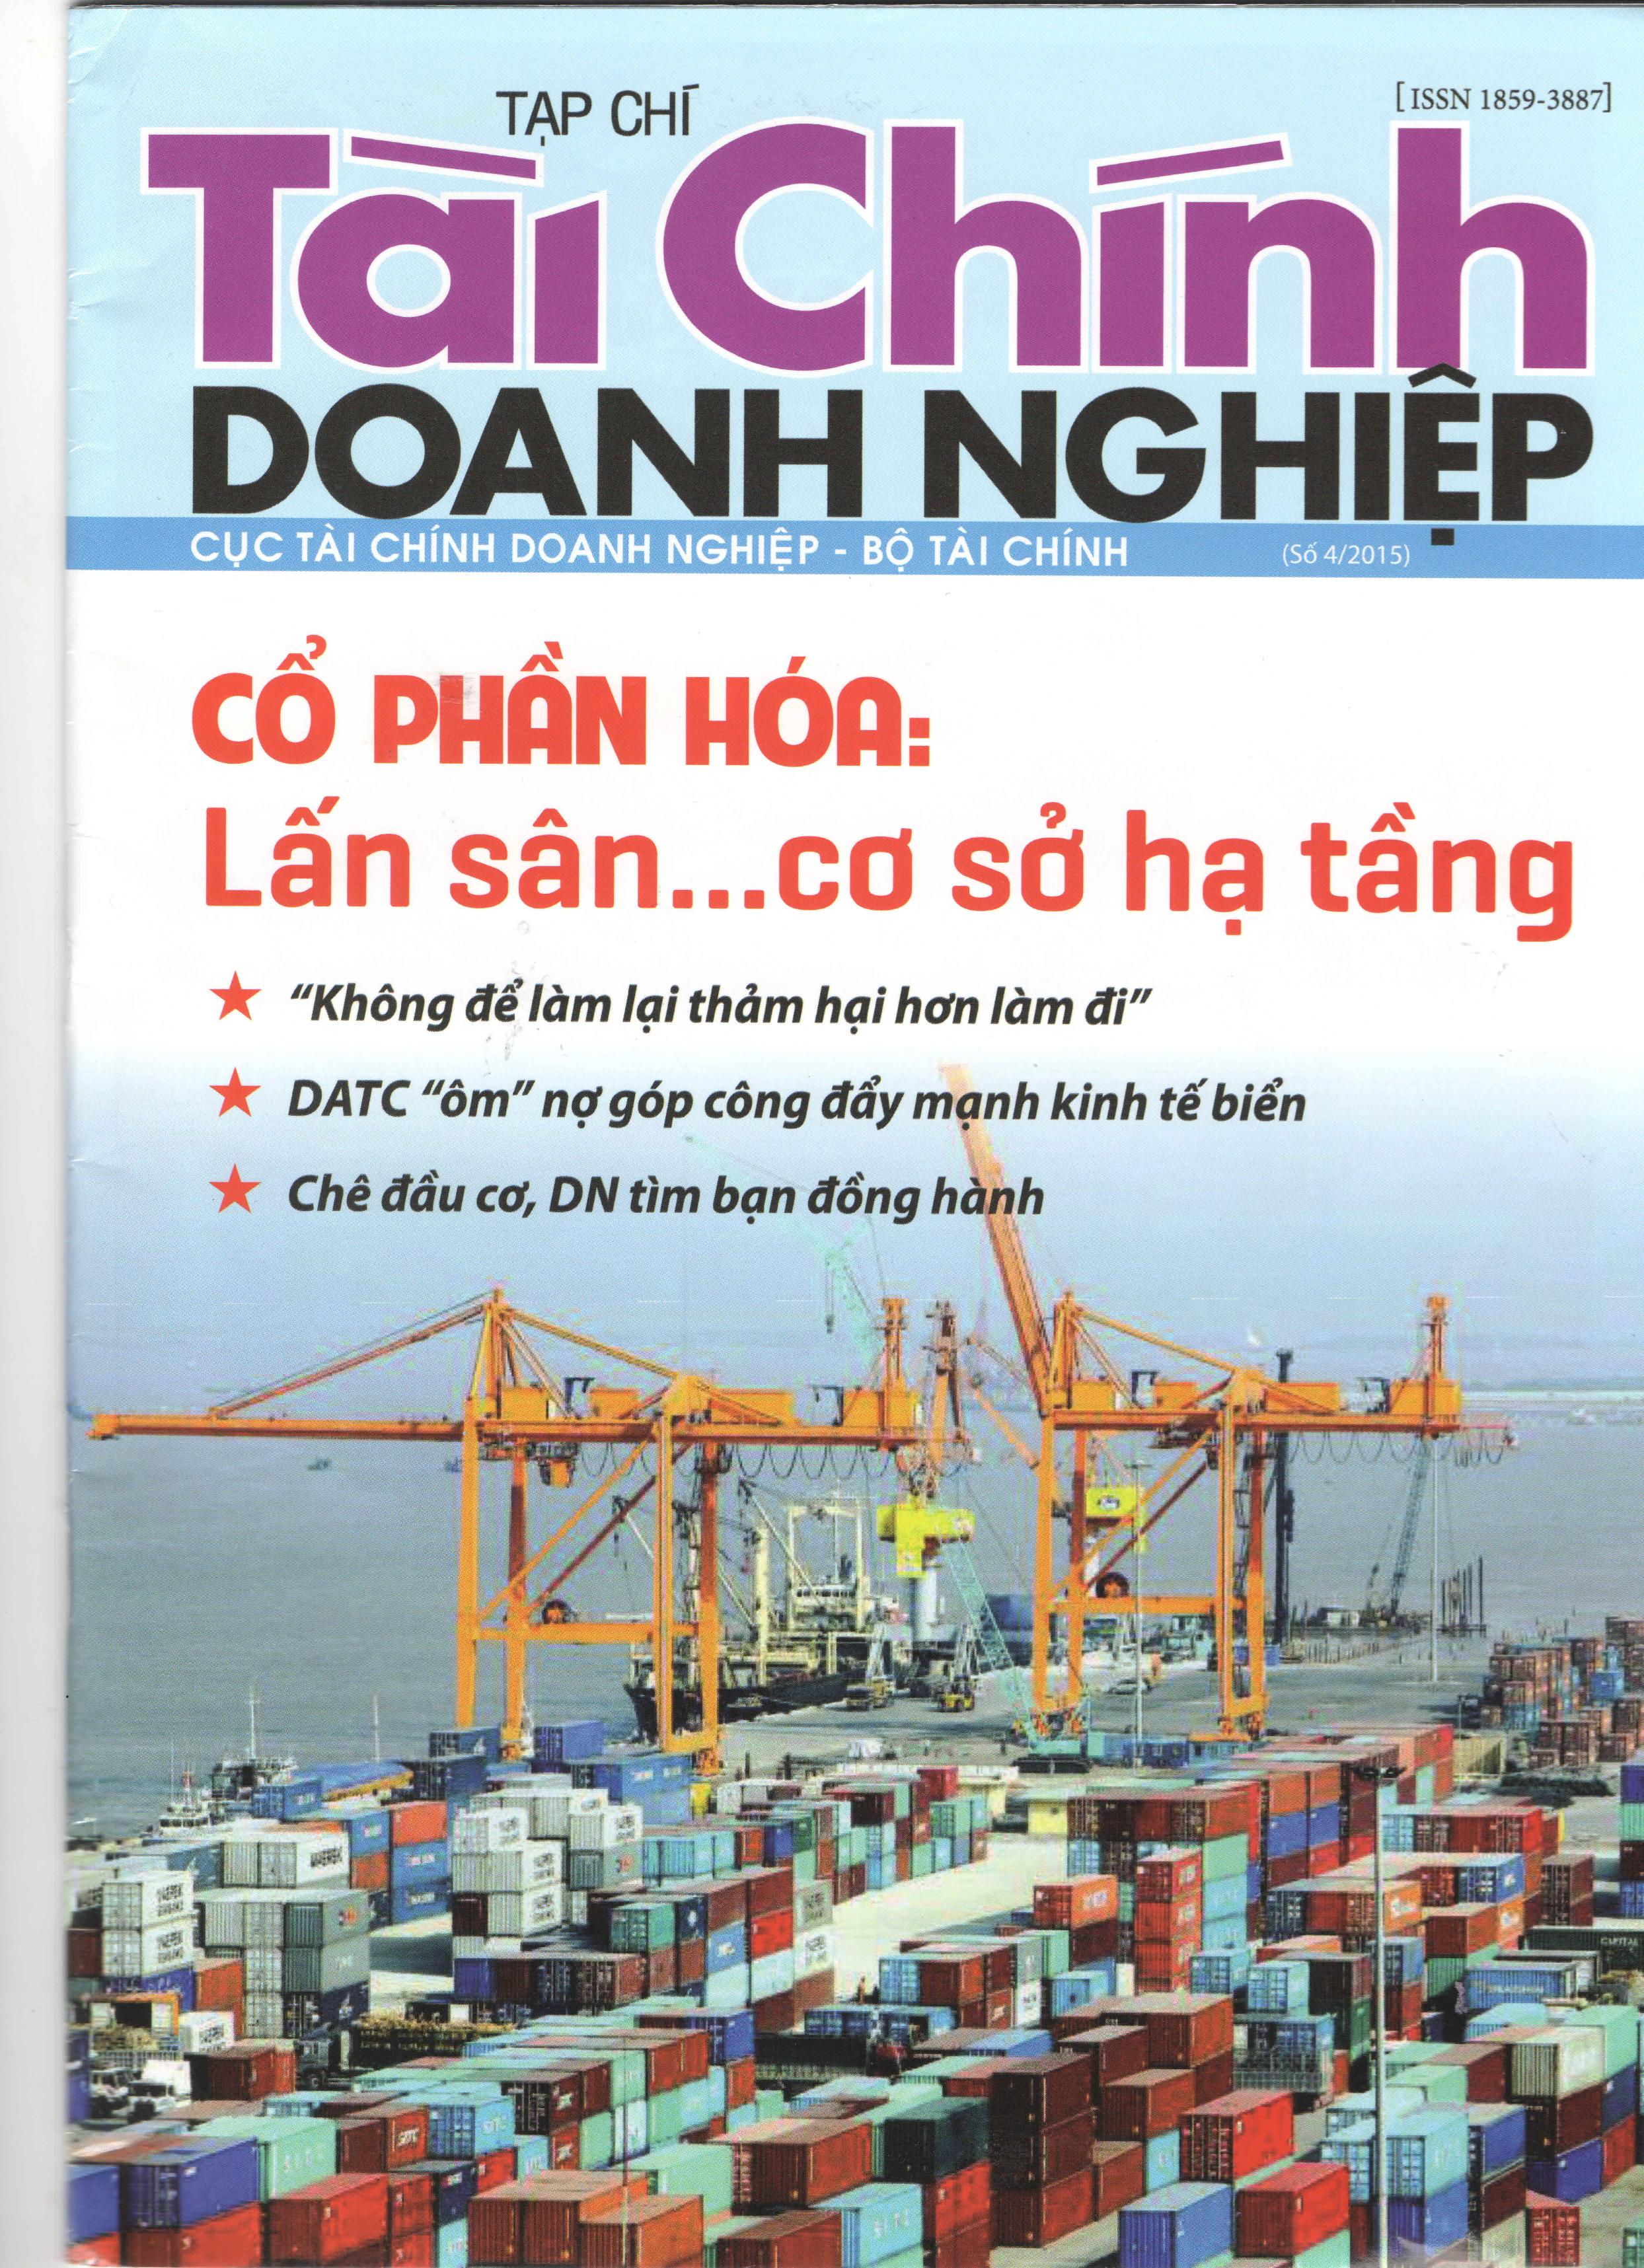 Vai-tro-phap-che-trong-doanh-nghiep-page-001